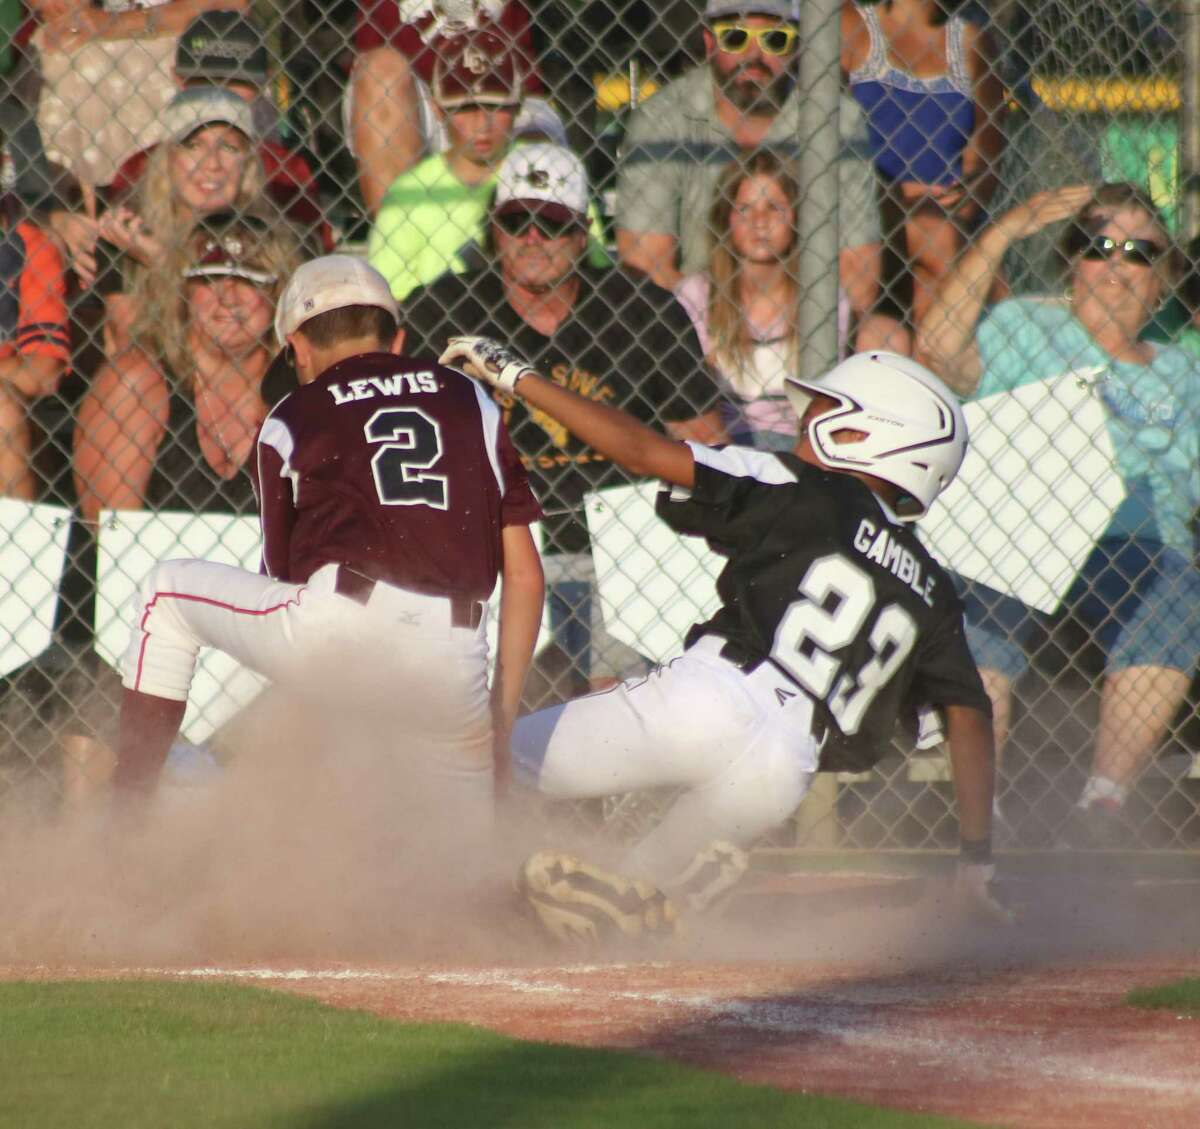 League City National pitcher Carter Lewis tags out a Pearland runner trying to increase the lead to 7-0 Sunday night.